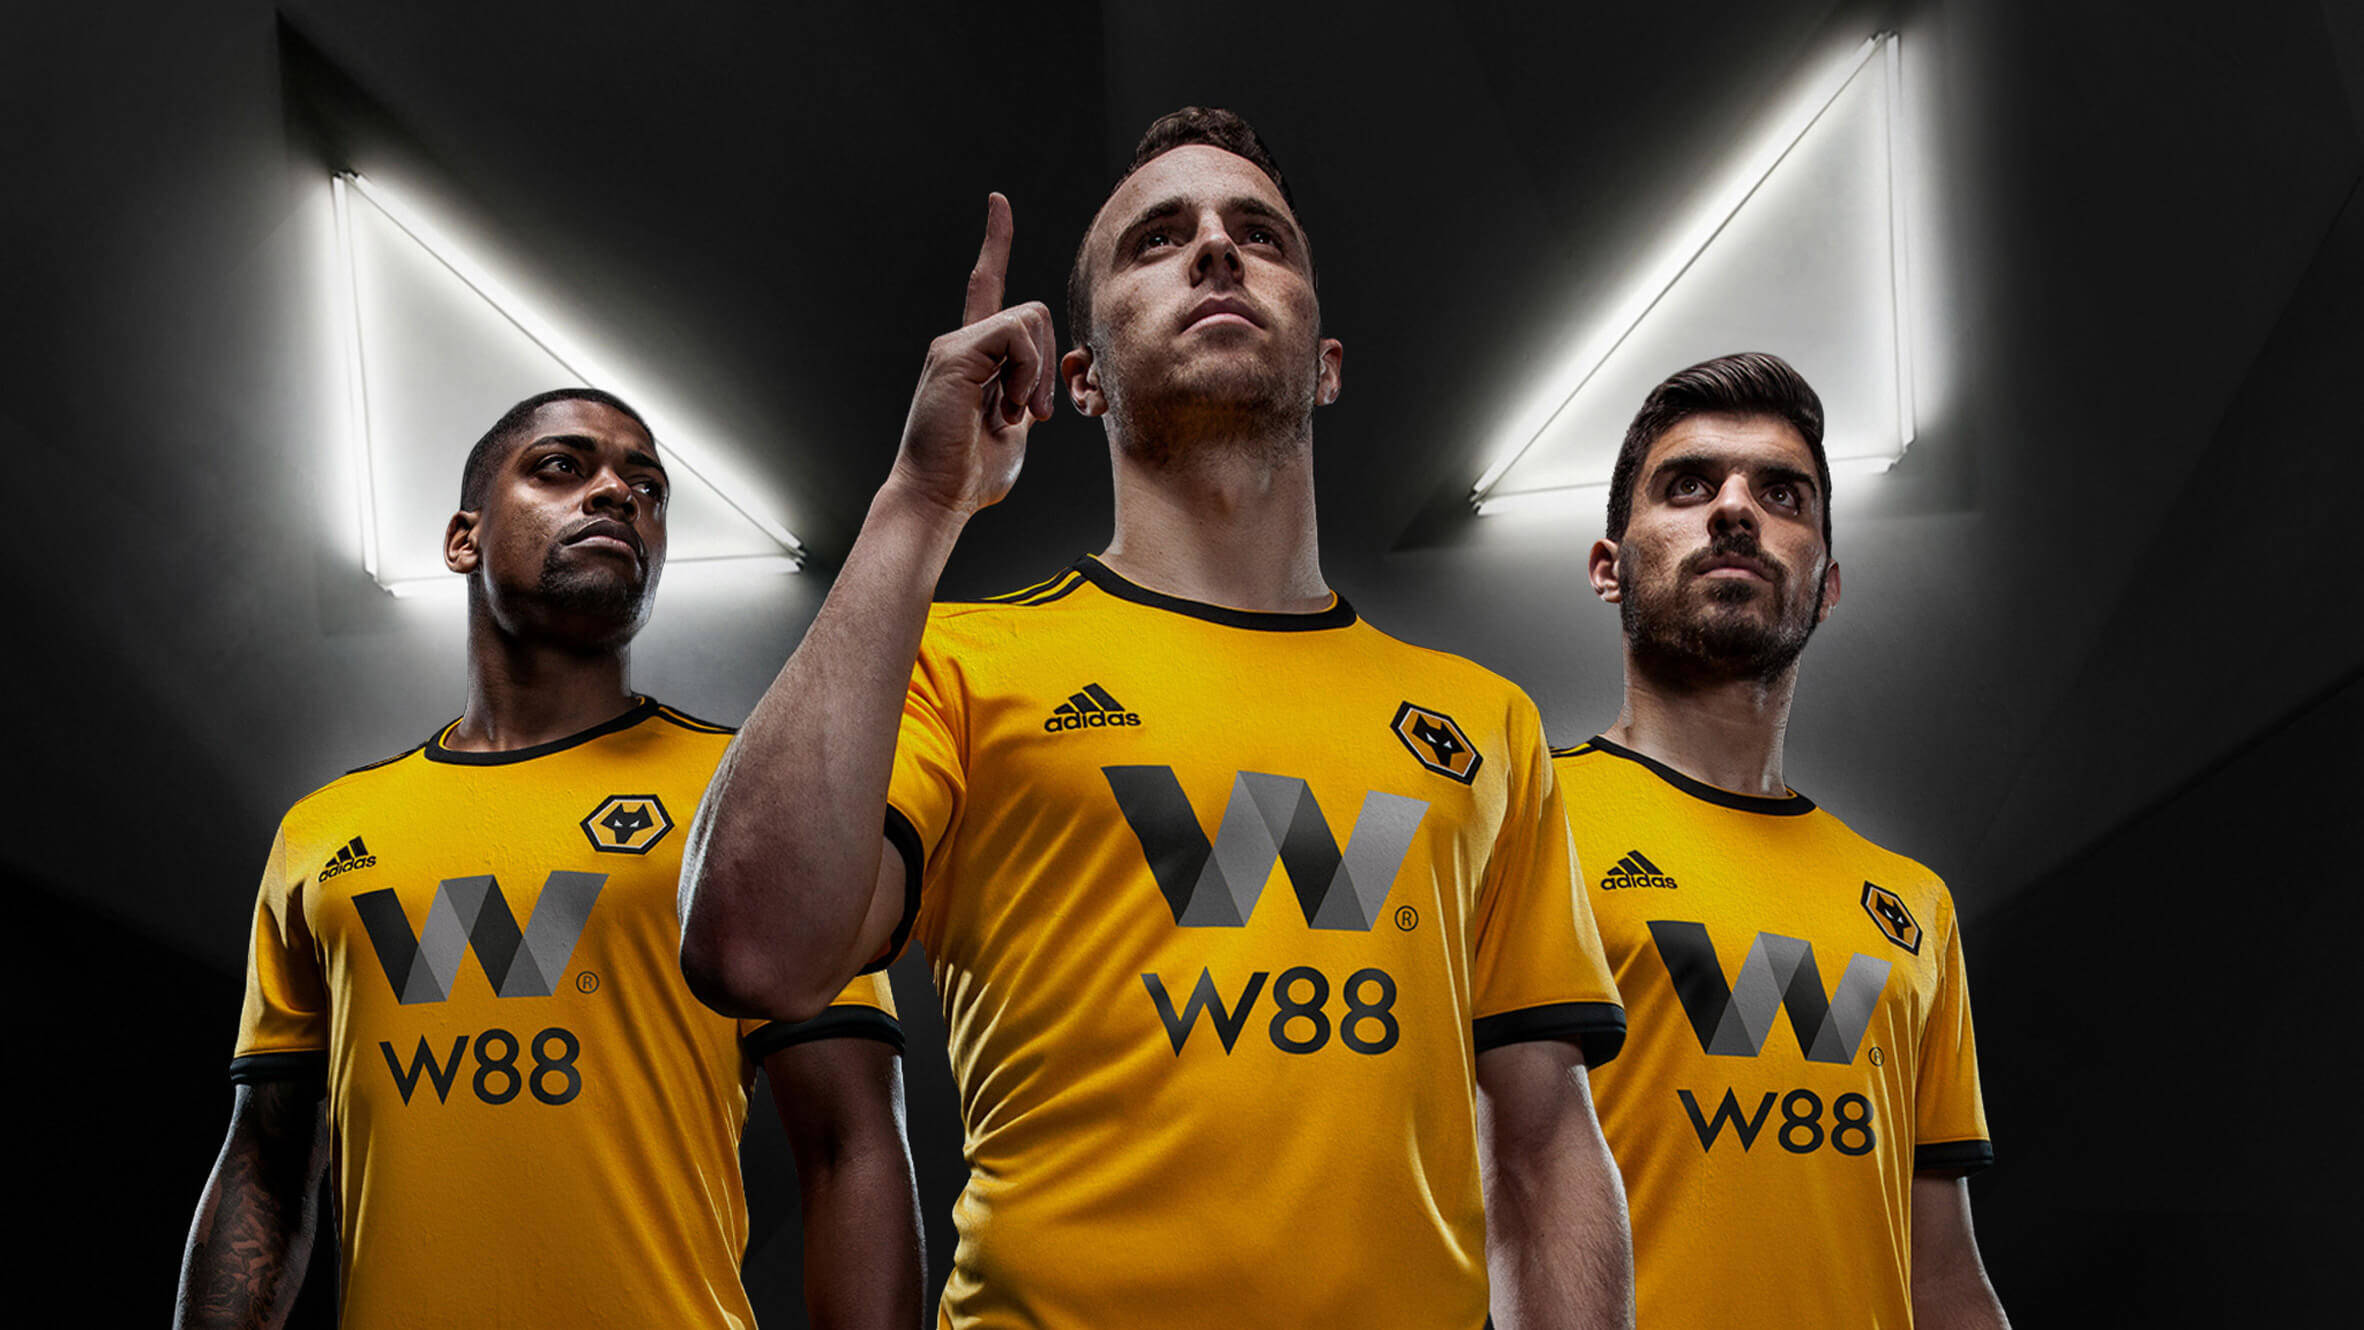 soi-keo-wolverhampton-wanderers-vs-leicester-city-luc-3h-ngay-15-2-2020-1